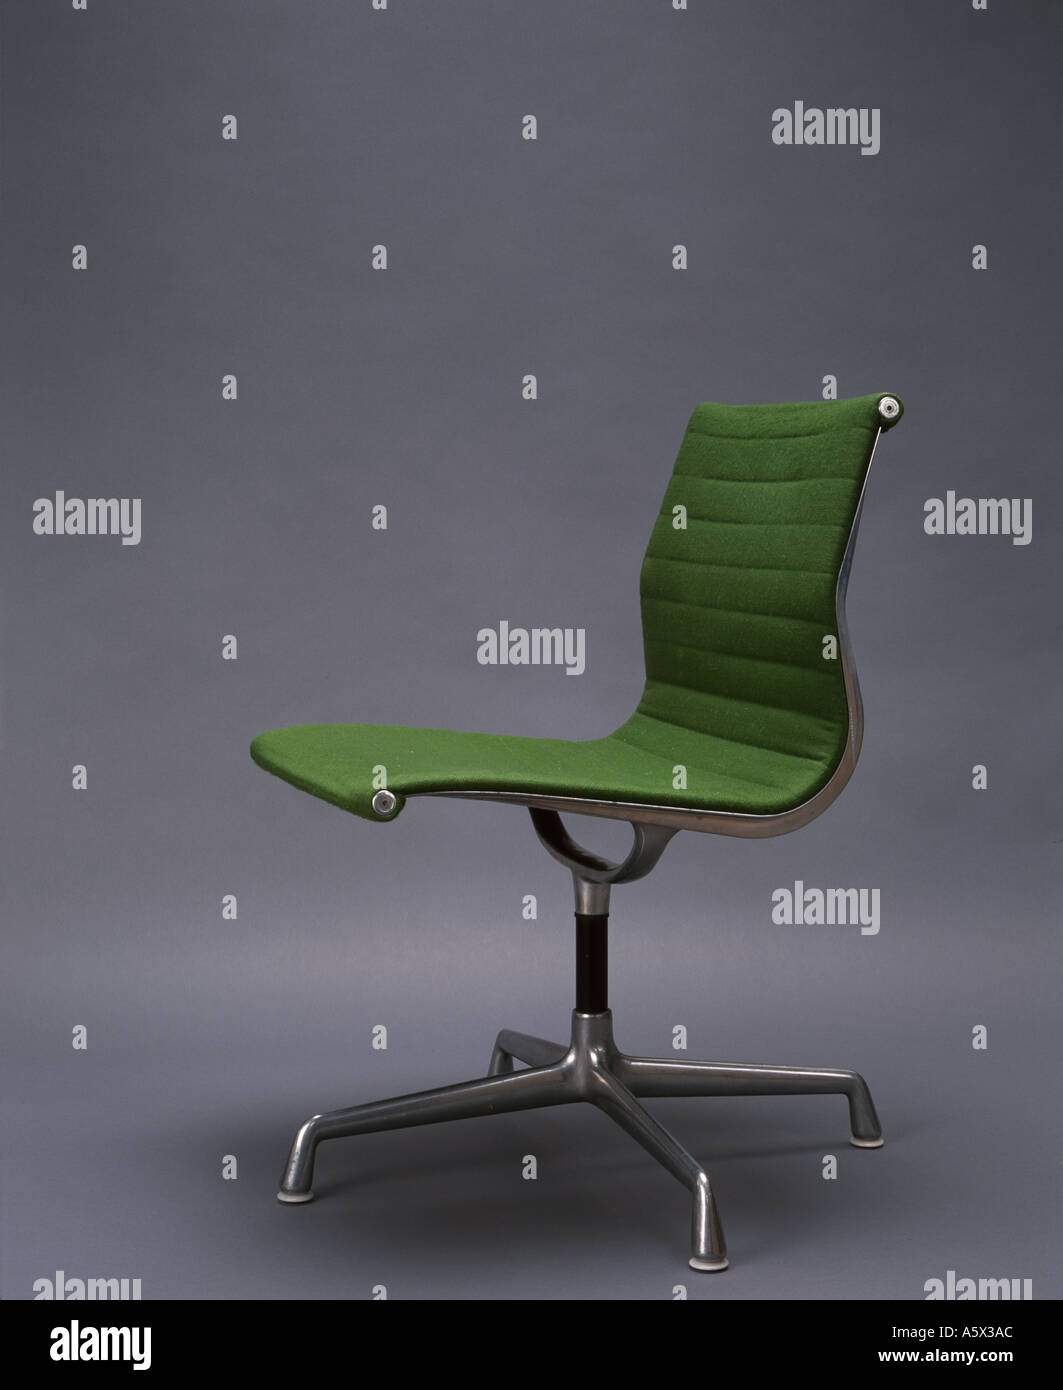 Aluminium Chair by Charles and Ray Eames, 1958. Architect: Charles and Ray Eames Stock Photo